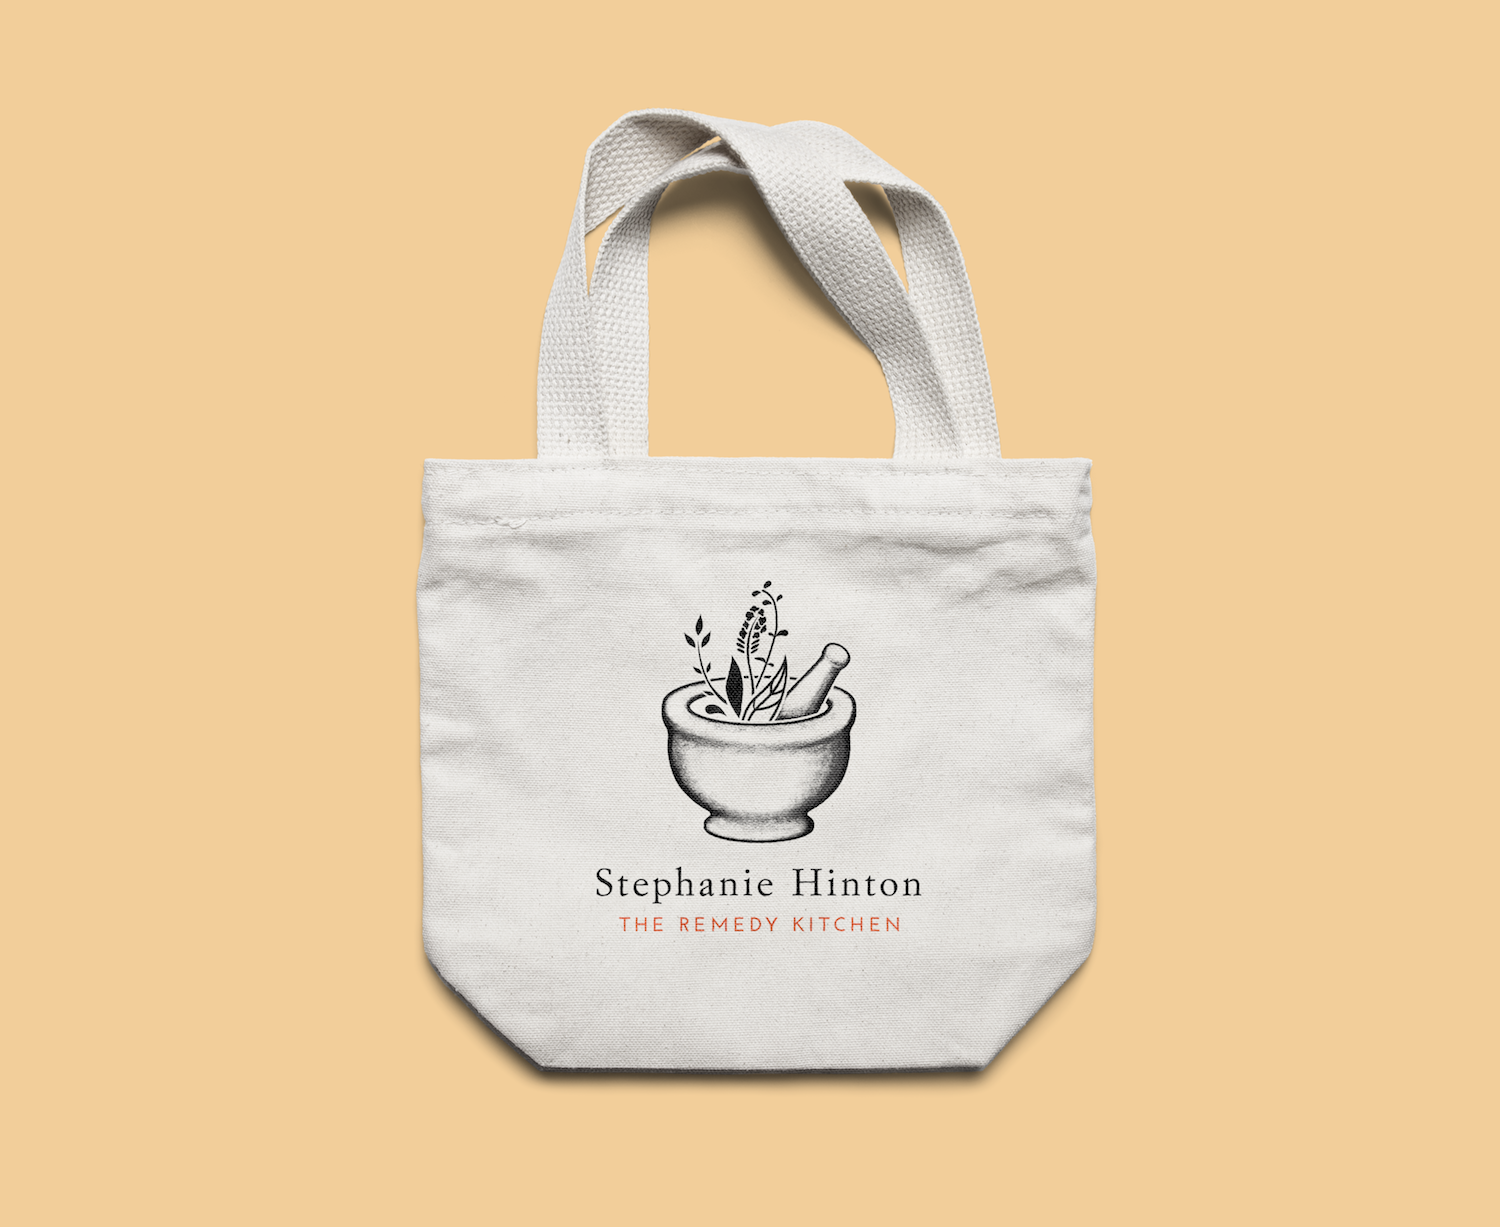 Jo-ChunYan-Graphic-Designer-The-Remedy-Kitchen-Tote.png